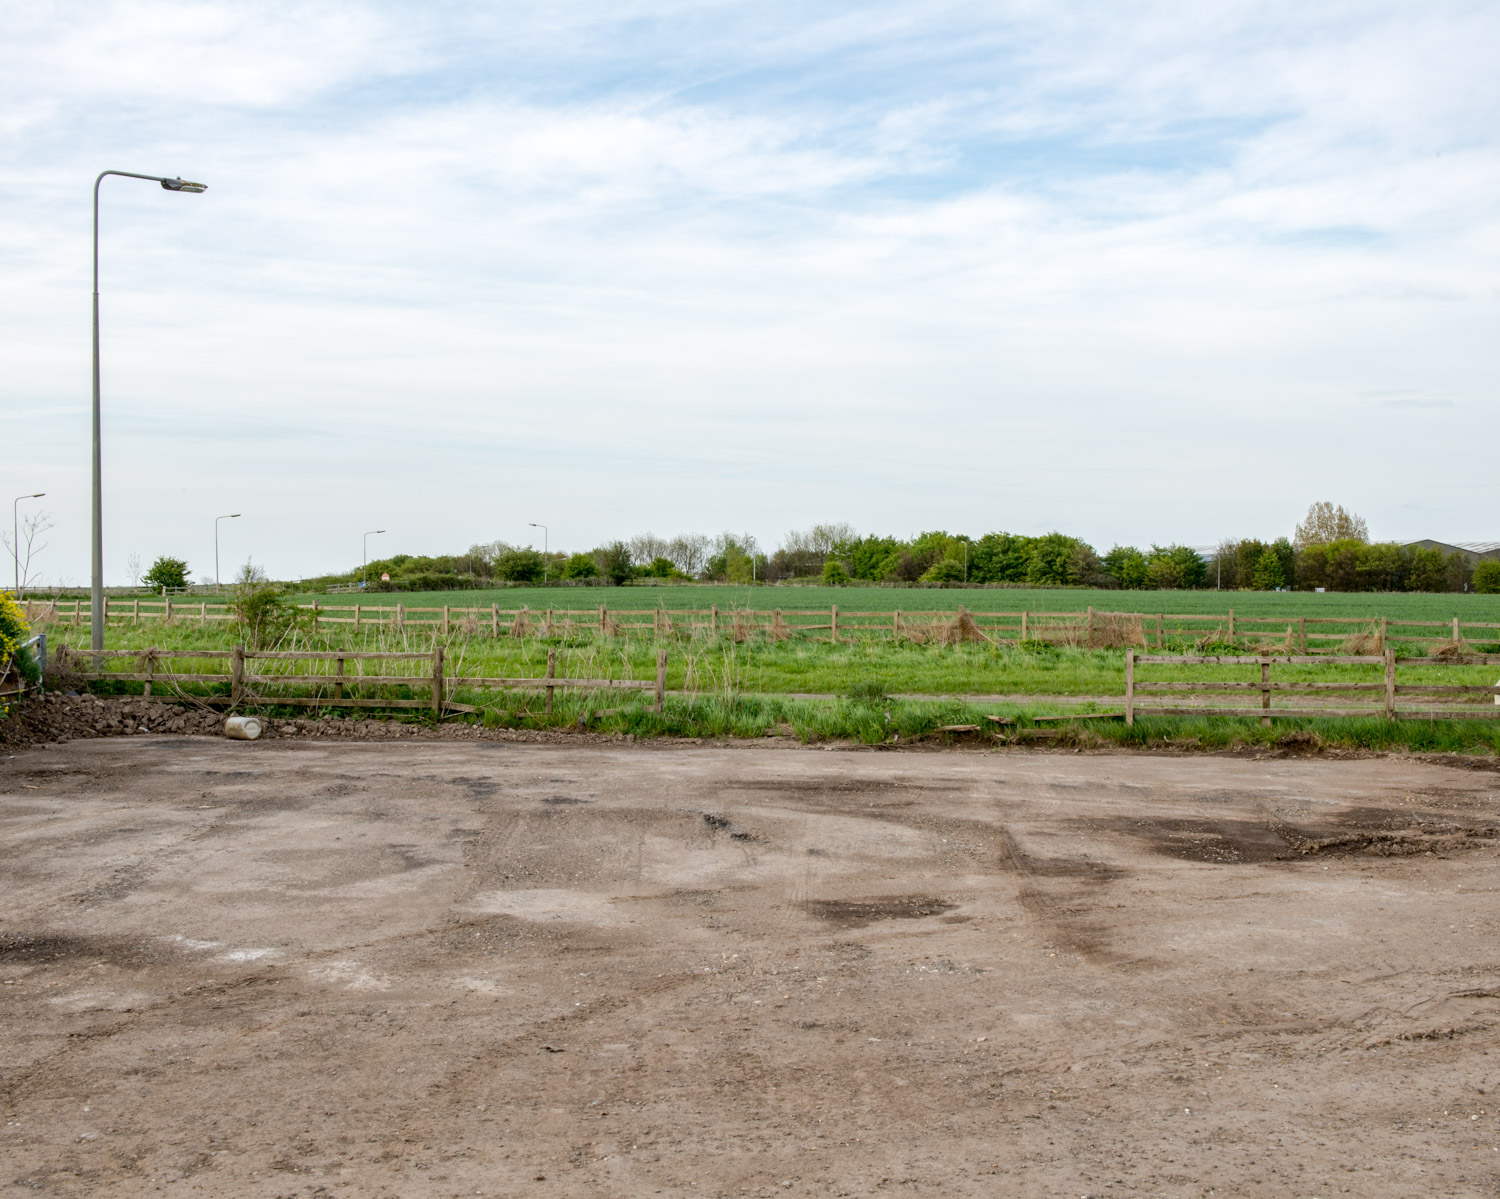 Runway 258 North, Elsham Wolds, Lincolnshire 2015